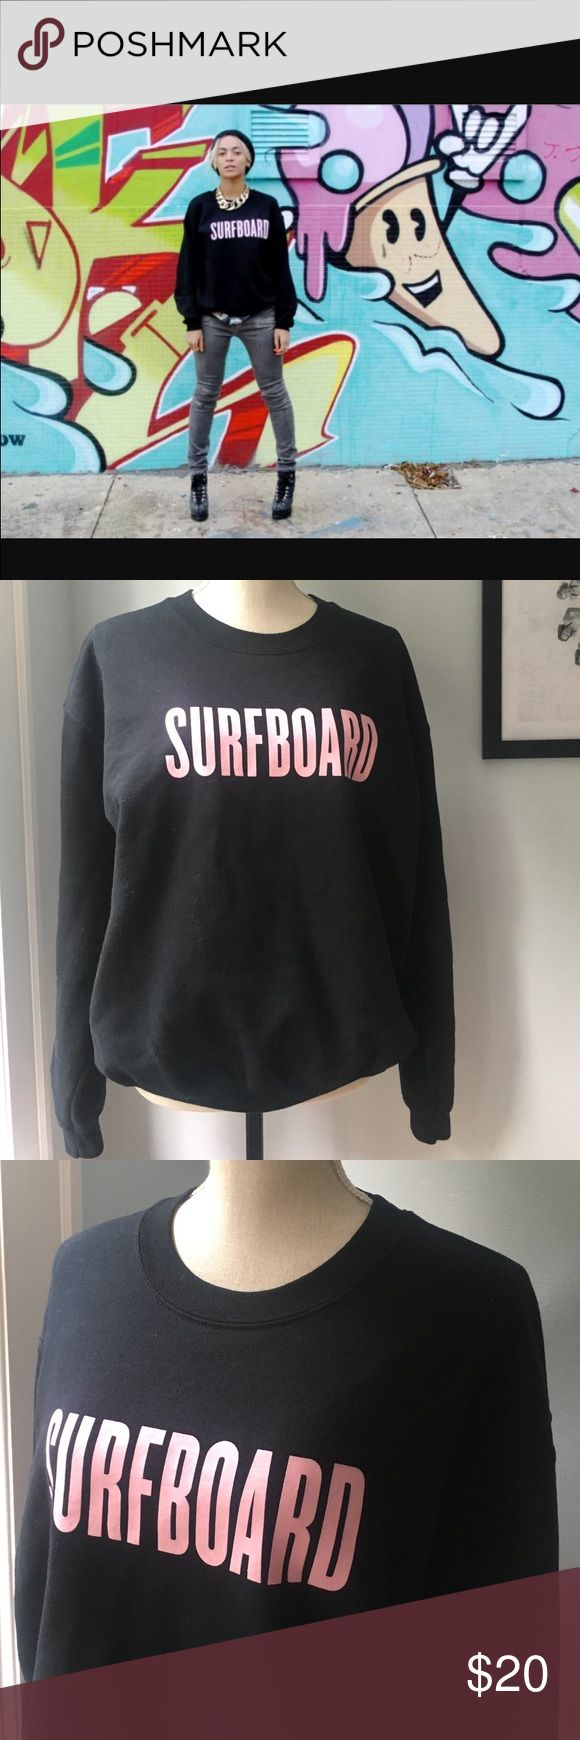 ⭐️Beyonce Store SURFBOARD sweatshirt ✨ Barely worn, purchased from the Beyonce store when the album first dropped. Loose fit, heavy cotton, no flaws, no fading. Perfect condition! Tops Sweatshirts & Hoodies